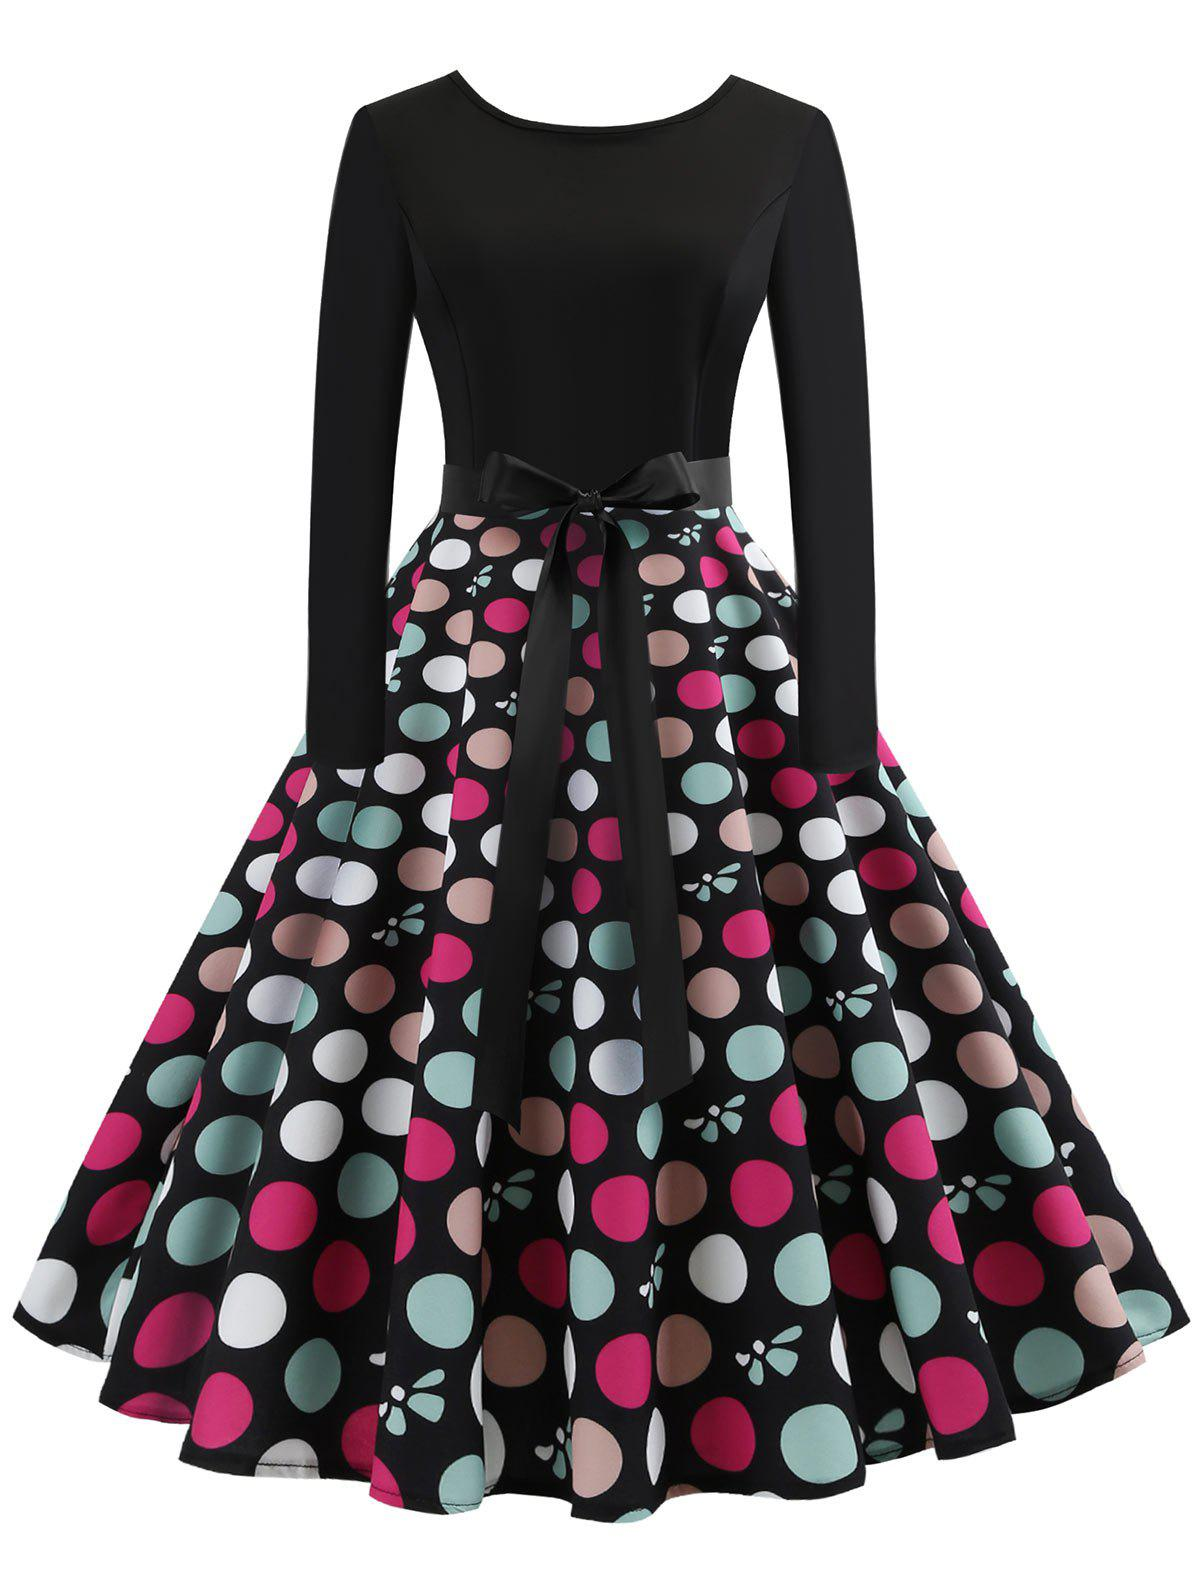 Shop Vintage Belted Polka Dot Swing Dress